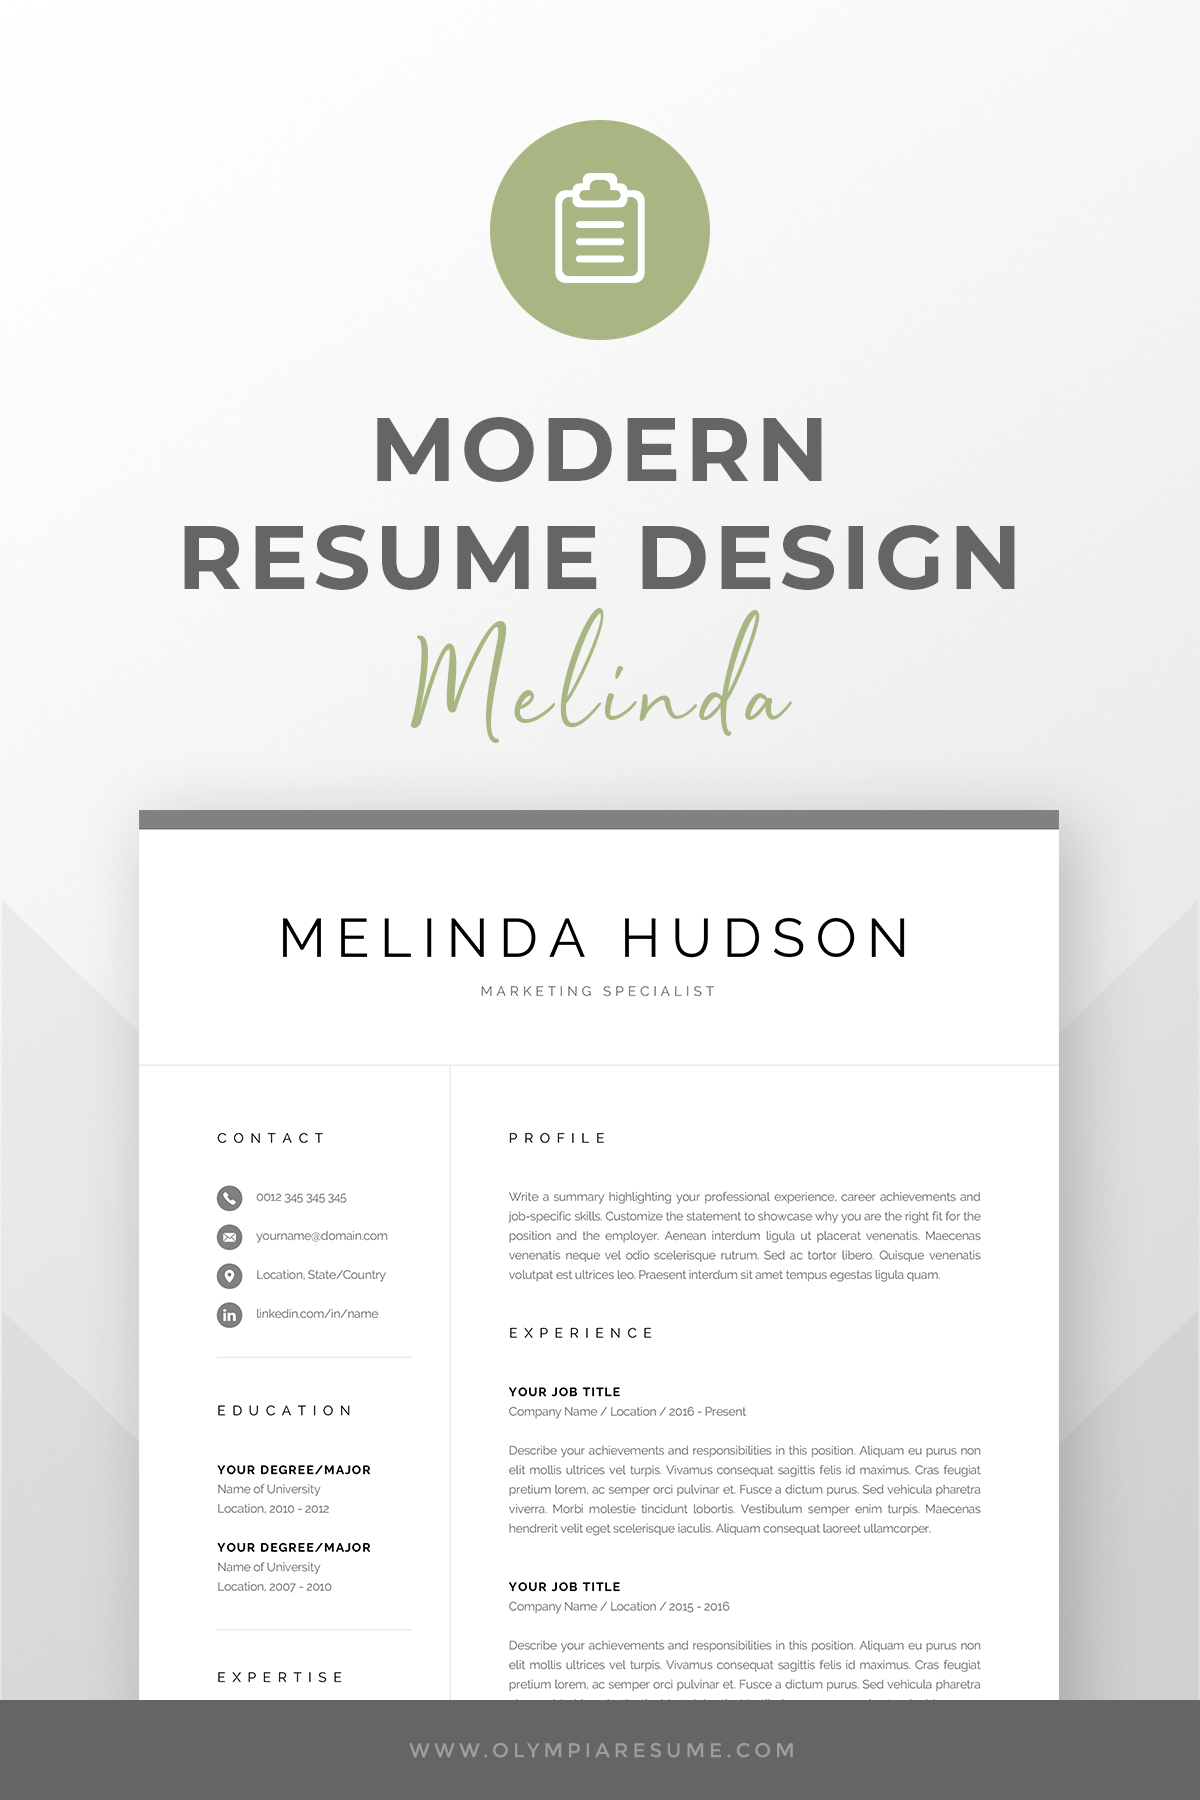 Modern Resume Template For Word Mac Pages Professional 1 Etsy In 2021 Modern Resume Template Resume Template Resume Template Professional